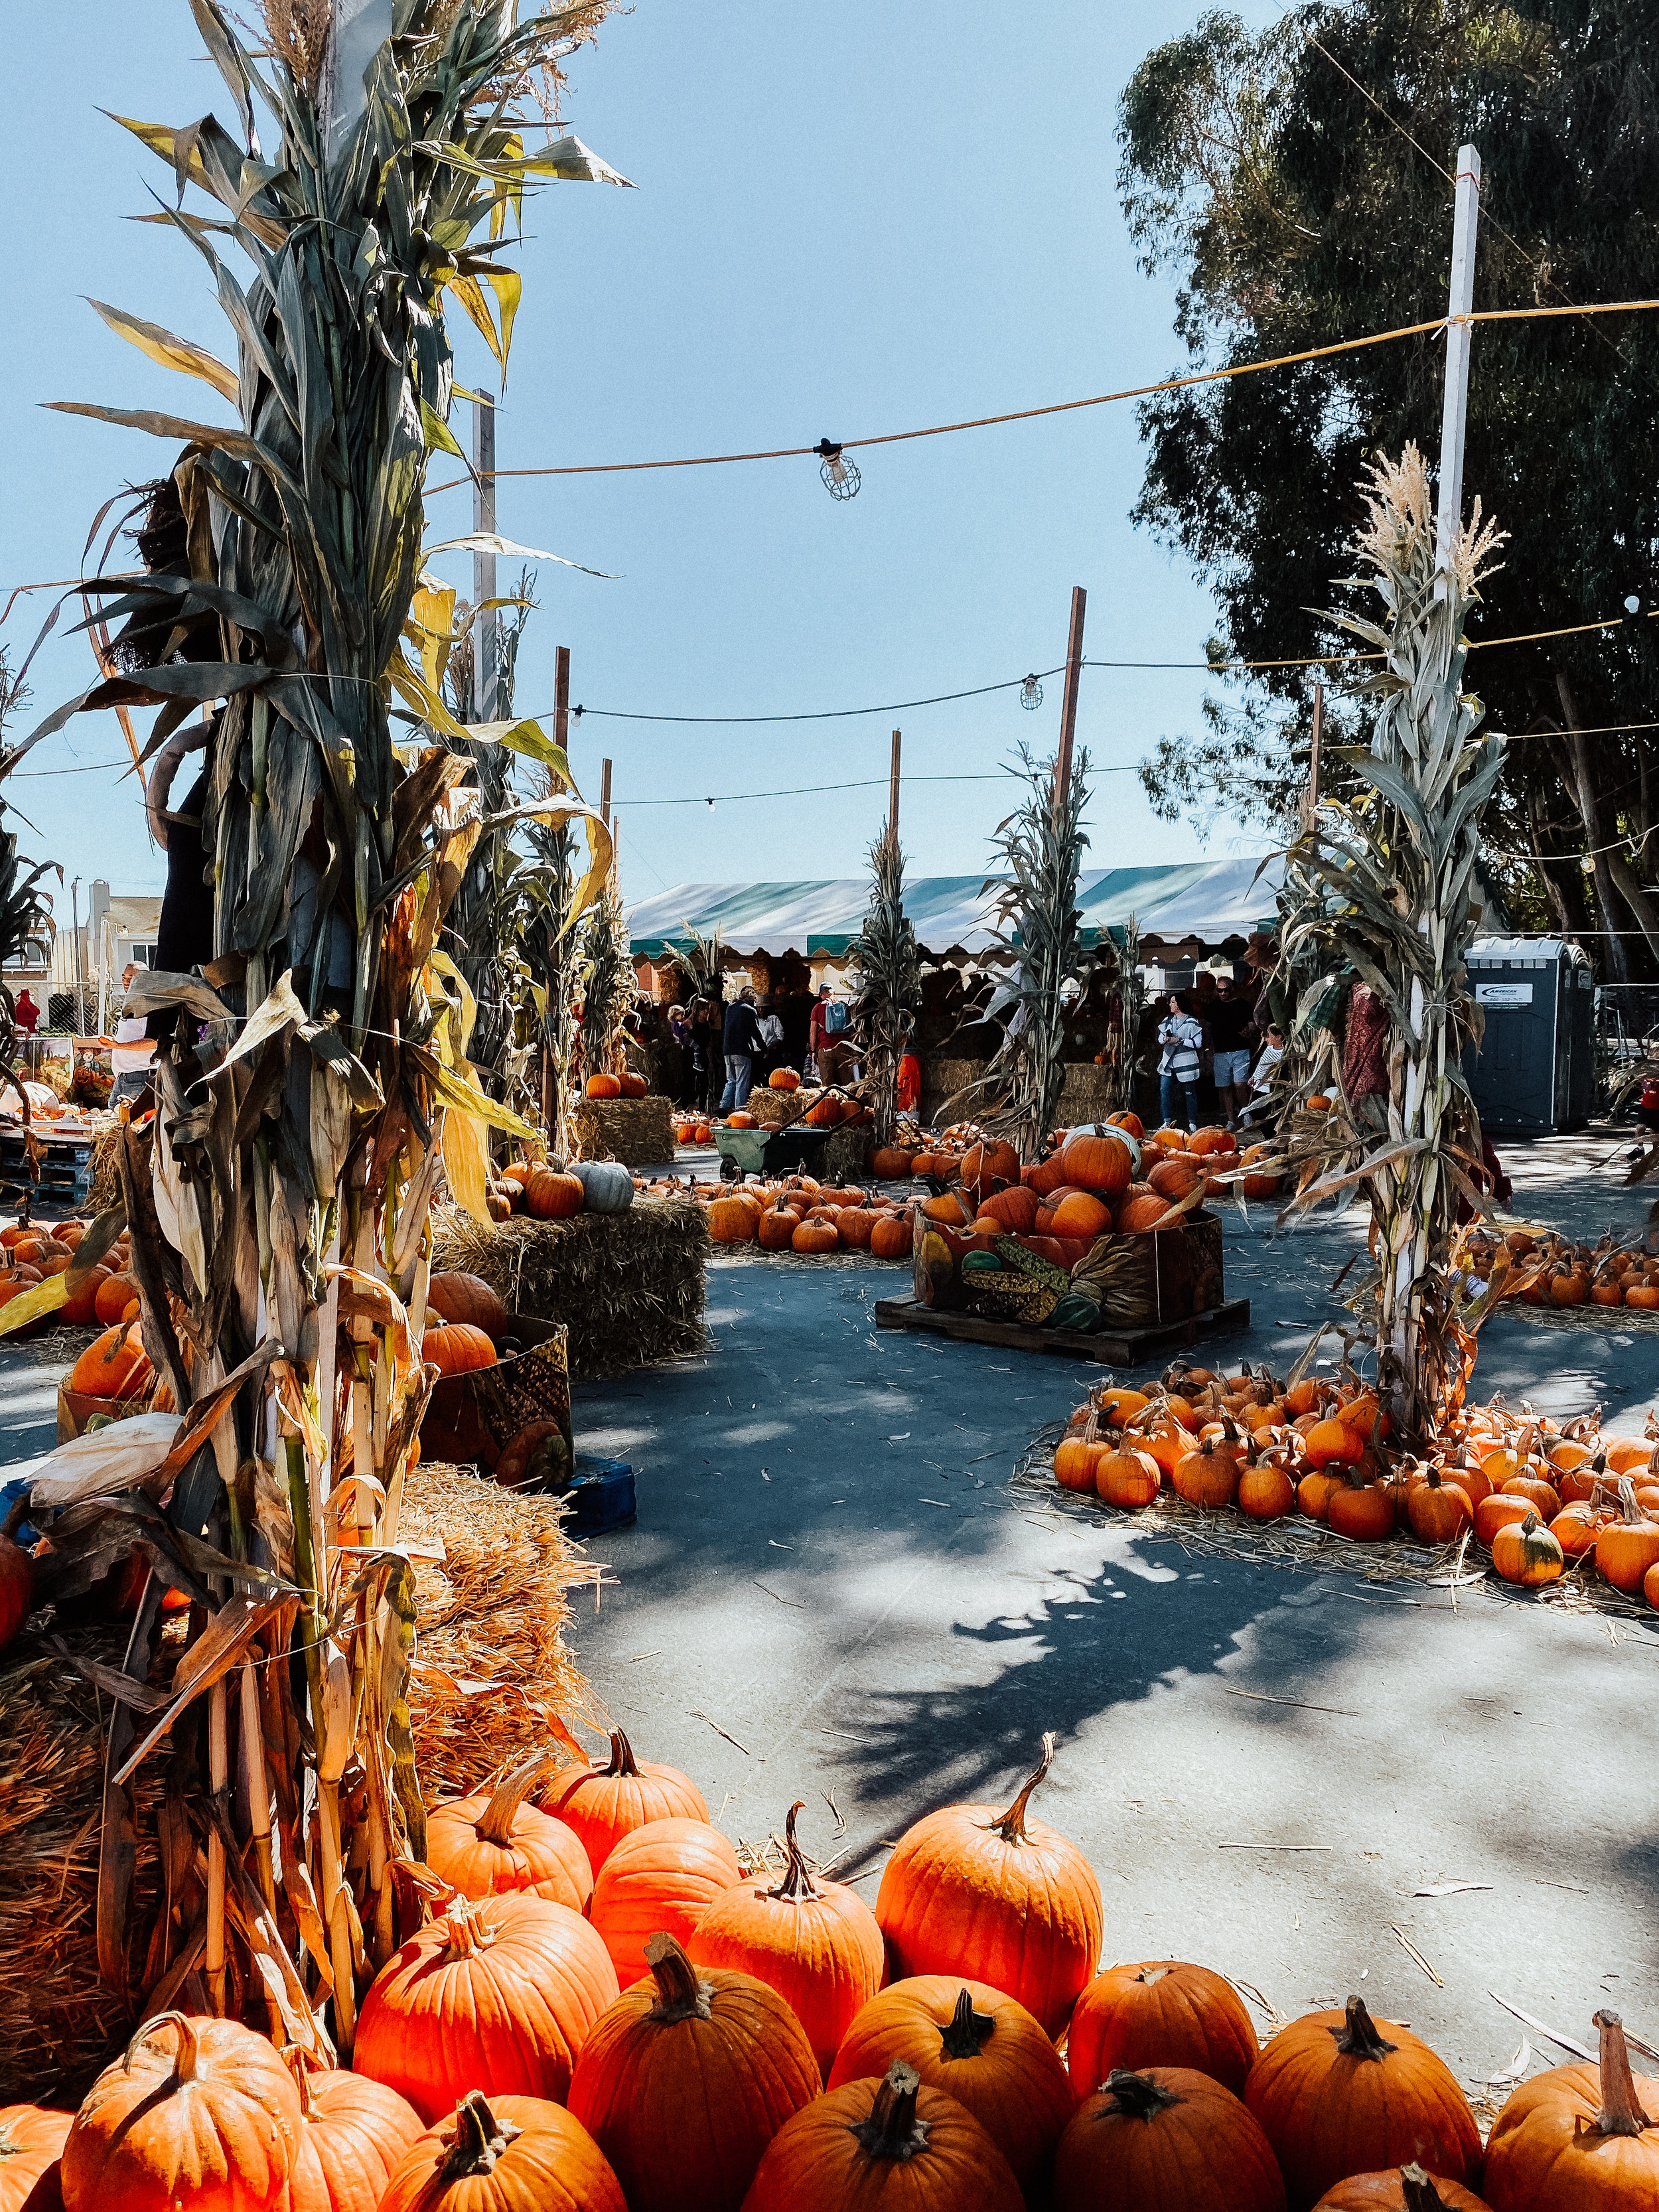 Kick off harvest season and early fall with this bucket list of the best autumnal activities to get in the seasonal spirit.